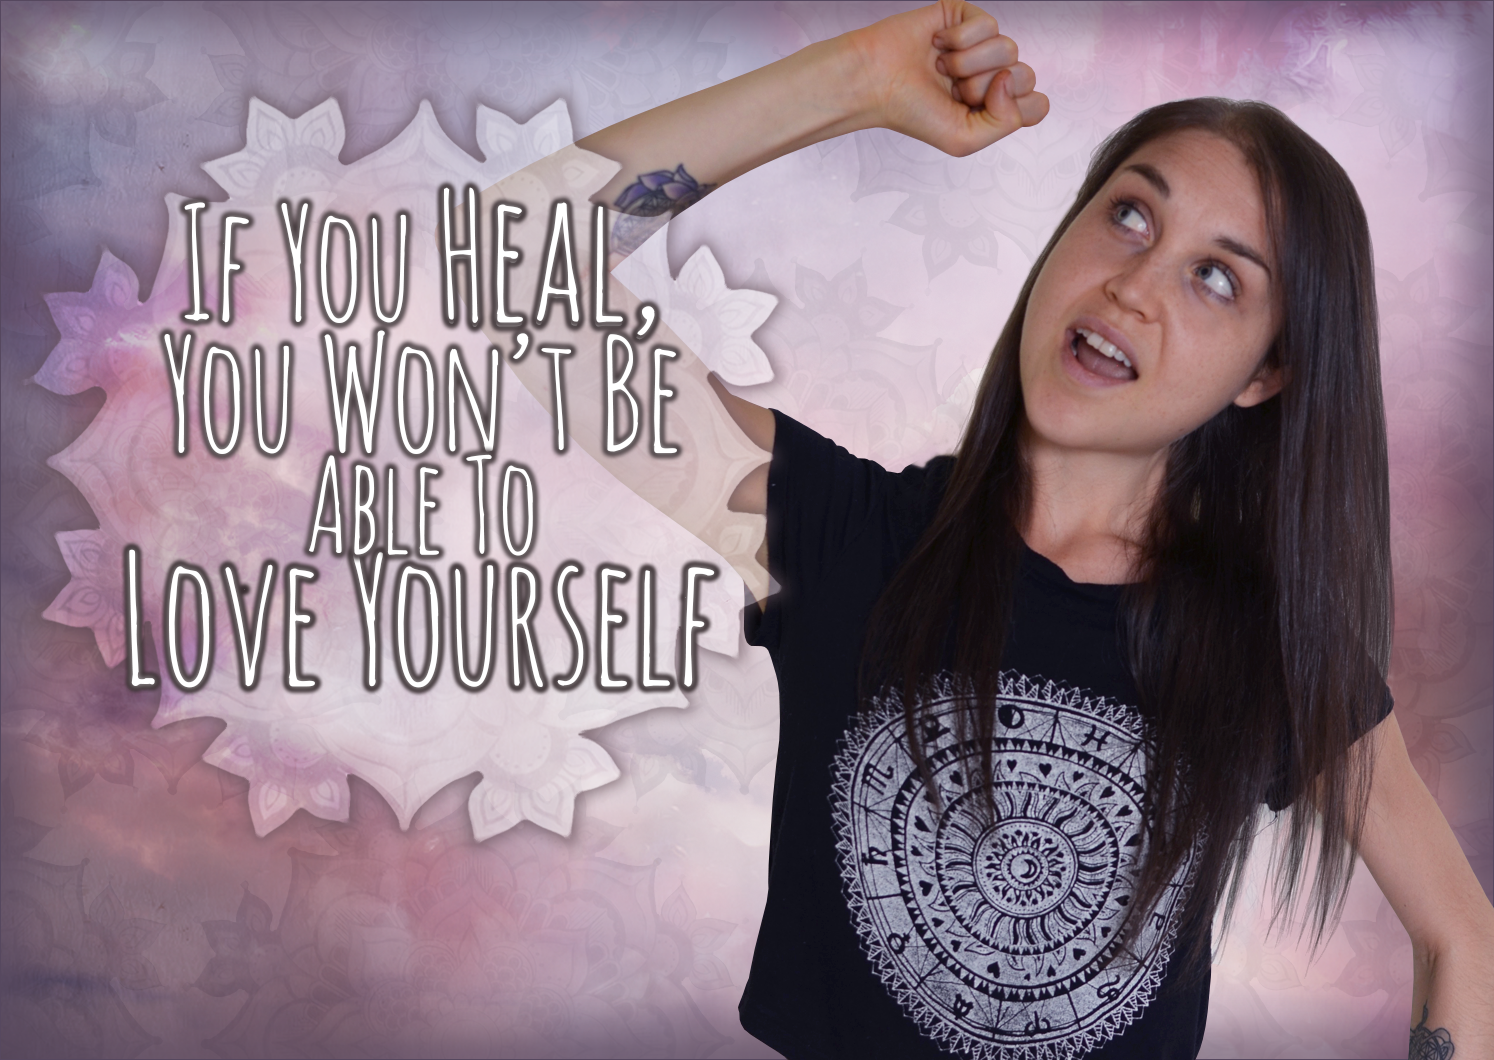 If You Heal, You Won't Be Able To Love Yourself